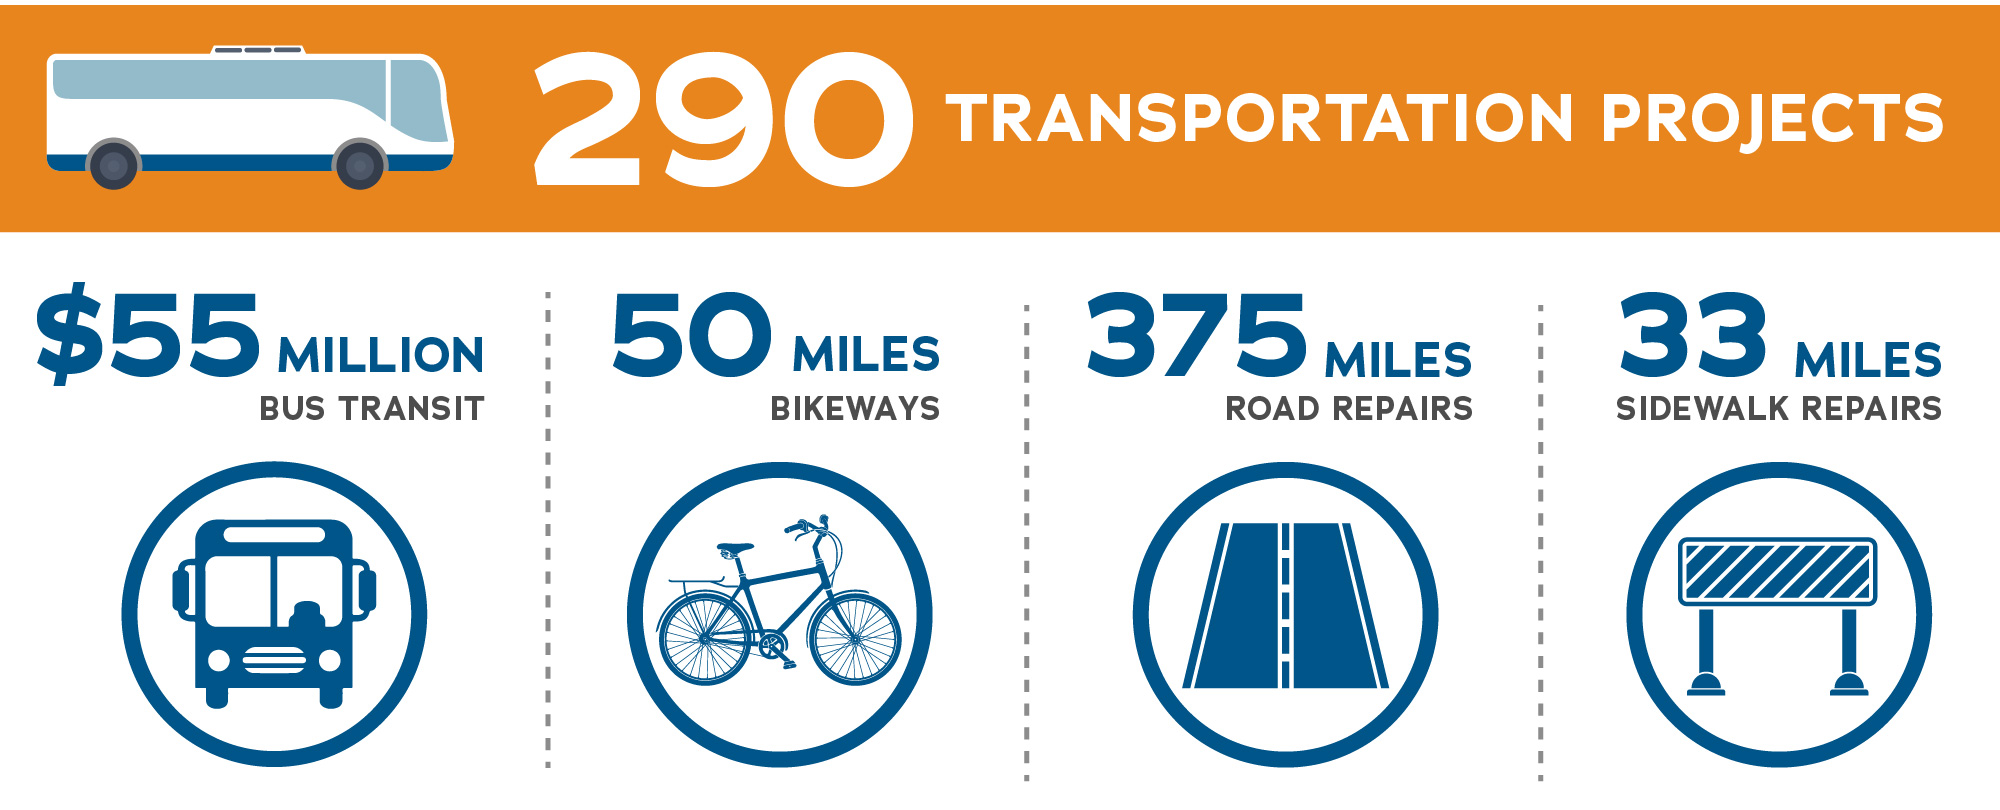 image showing various transportation projects facts and figures